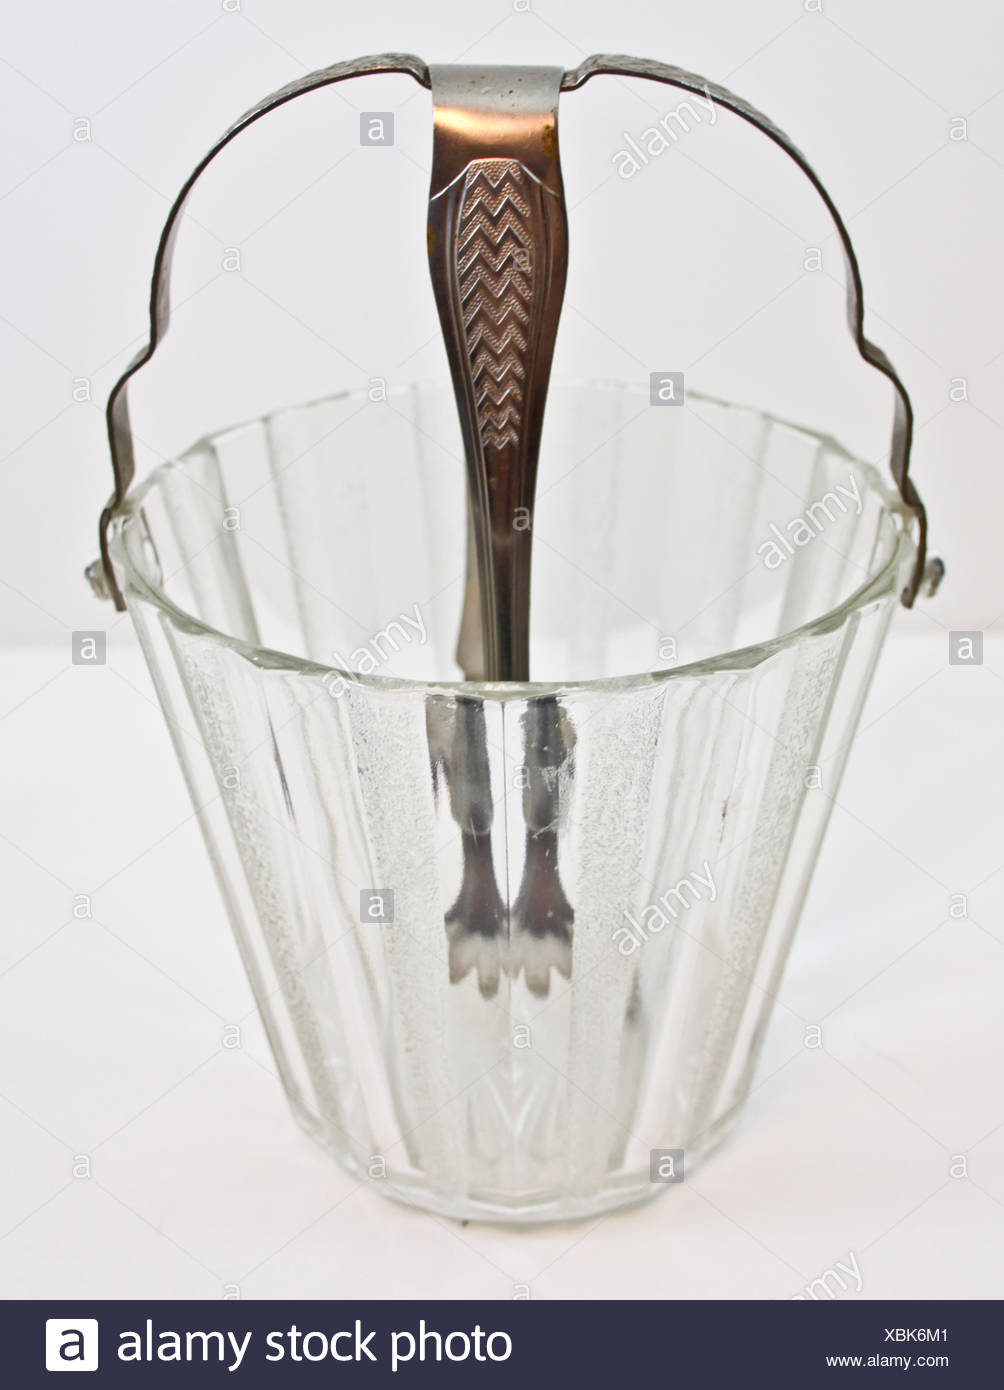 Close-Up Of Transparent Bucket Over White Background - Stock Image